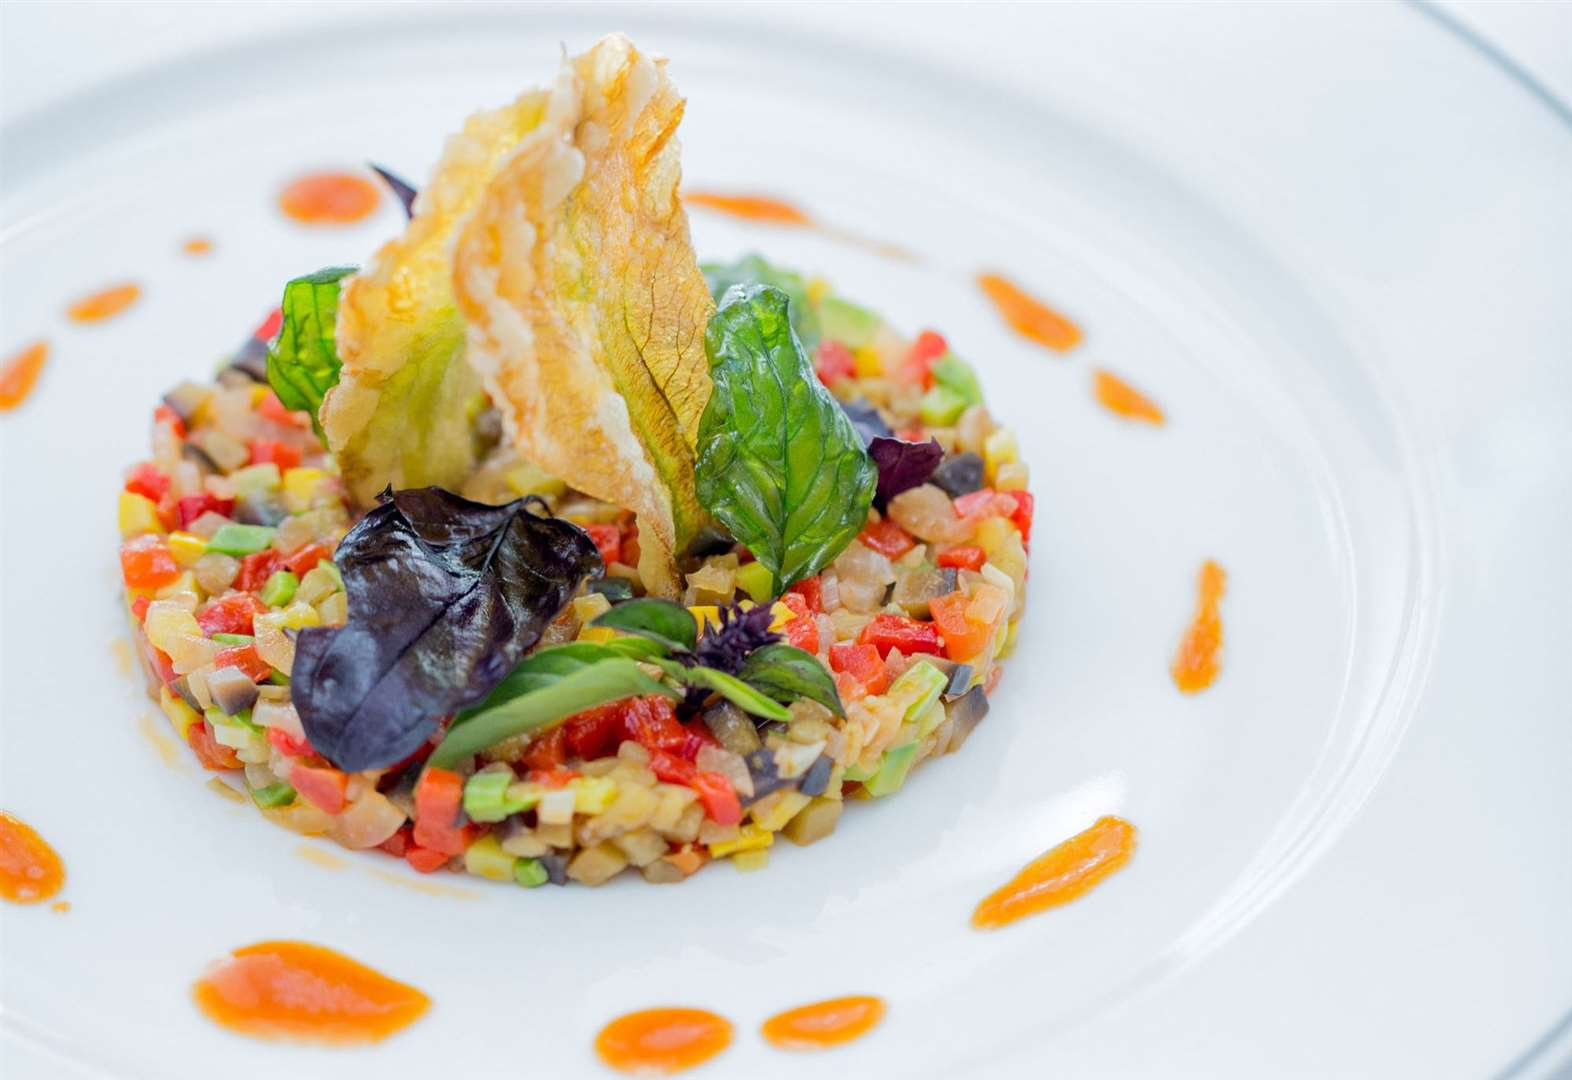 Recipe of the week: fine diced ratatouille by Alain Ducasse